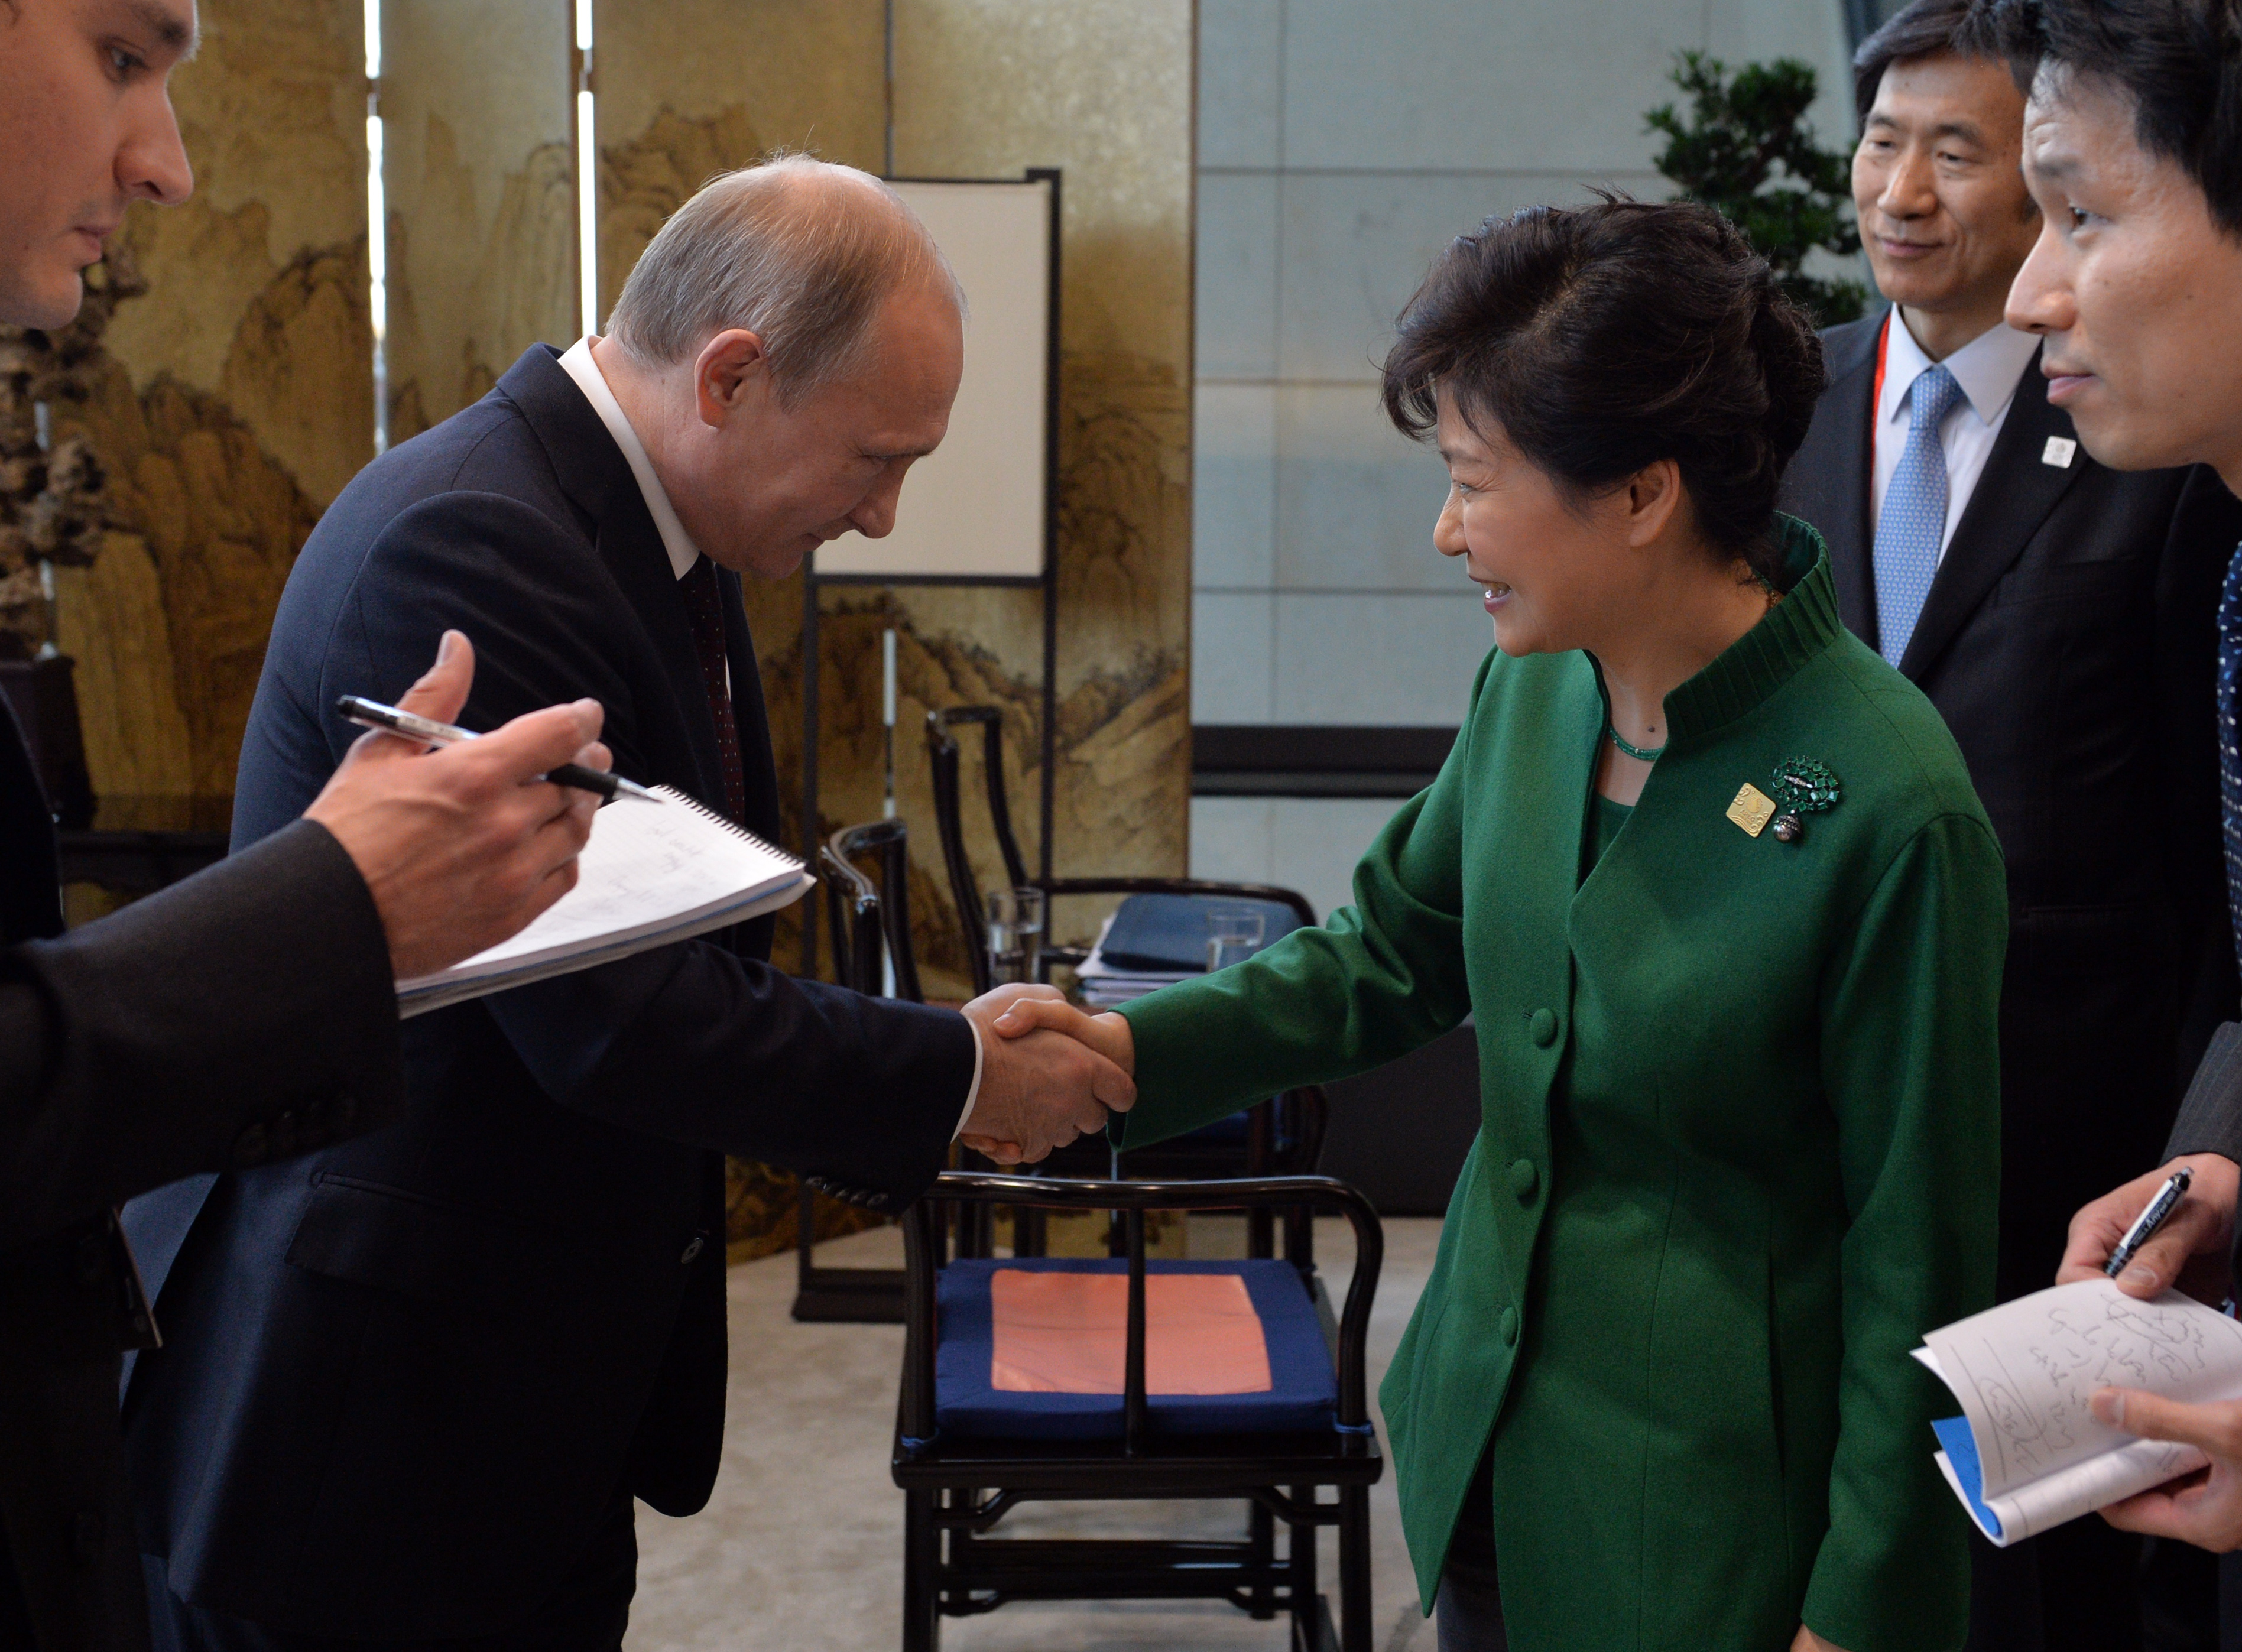 November 2014. Putin exchanges an official handshake with South Korean President Park Geun-hye at the APEC Summit. No shawls were involved.